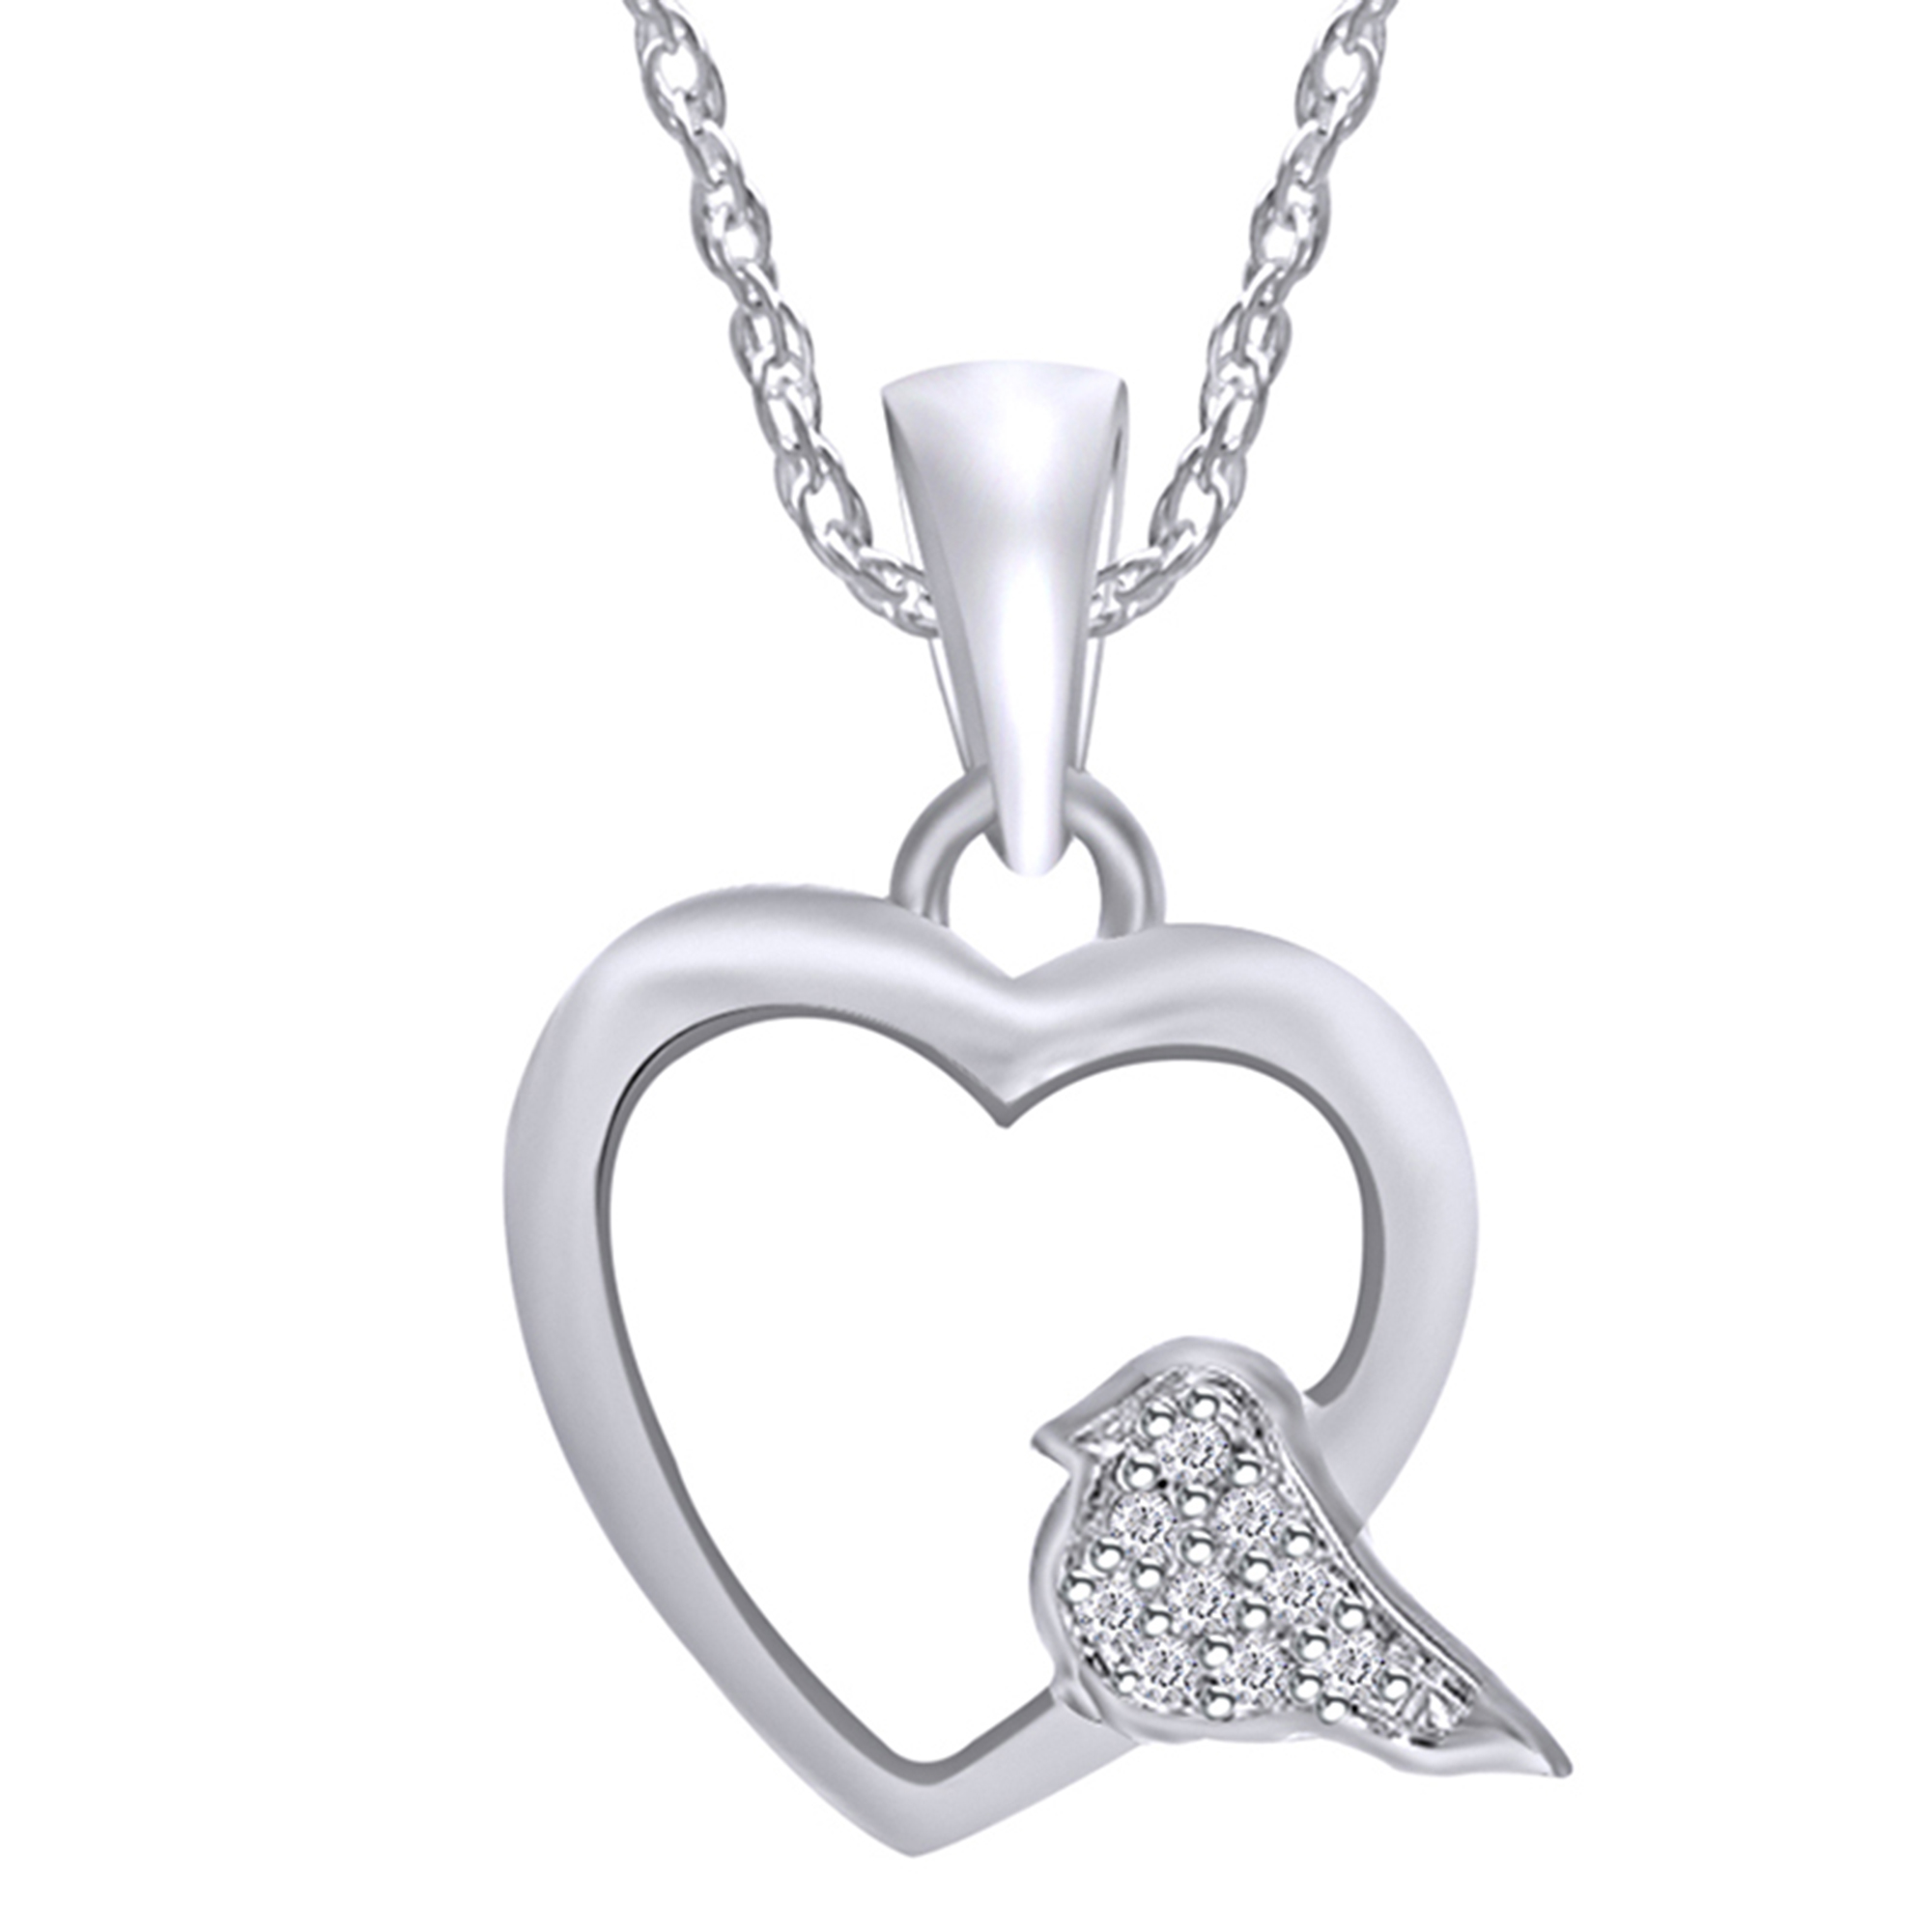 Wishrocks 14K Gold Over Sterling Silver Black Diamond Accent Musical Note Pendant Necklace